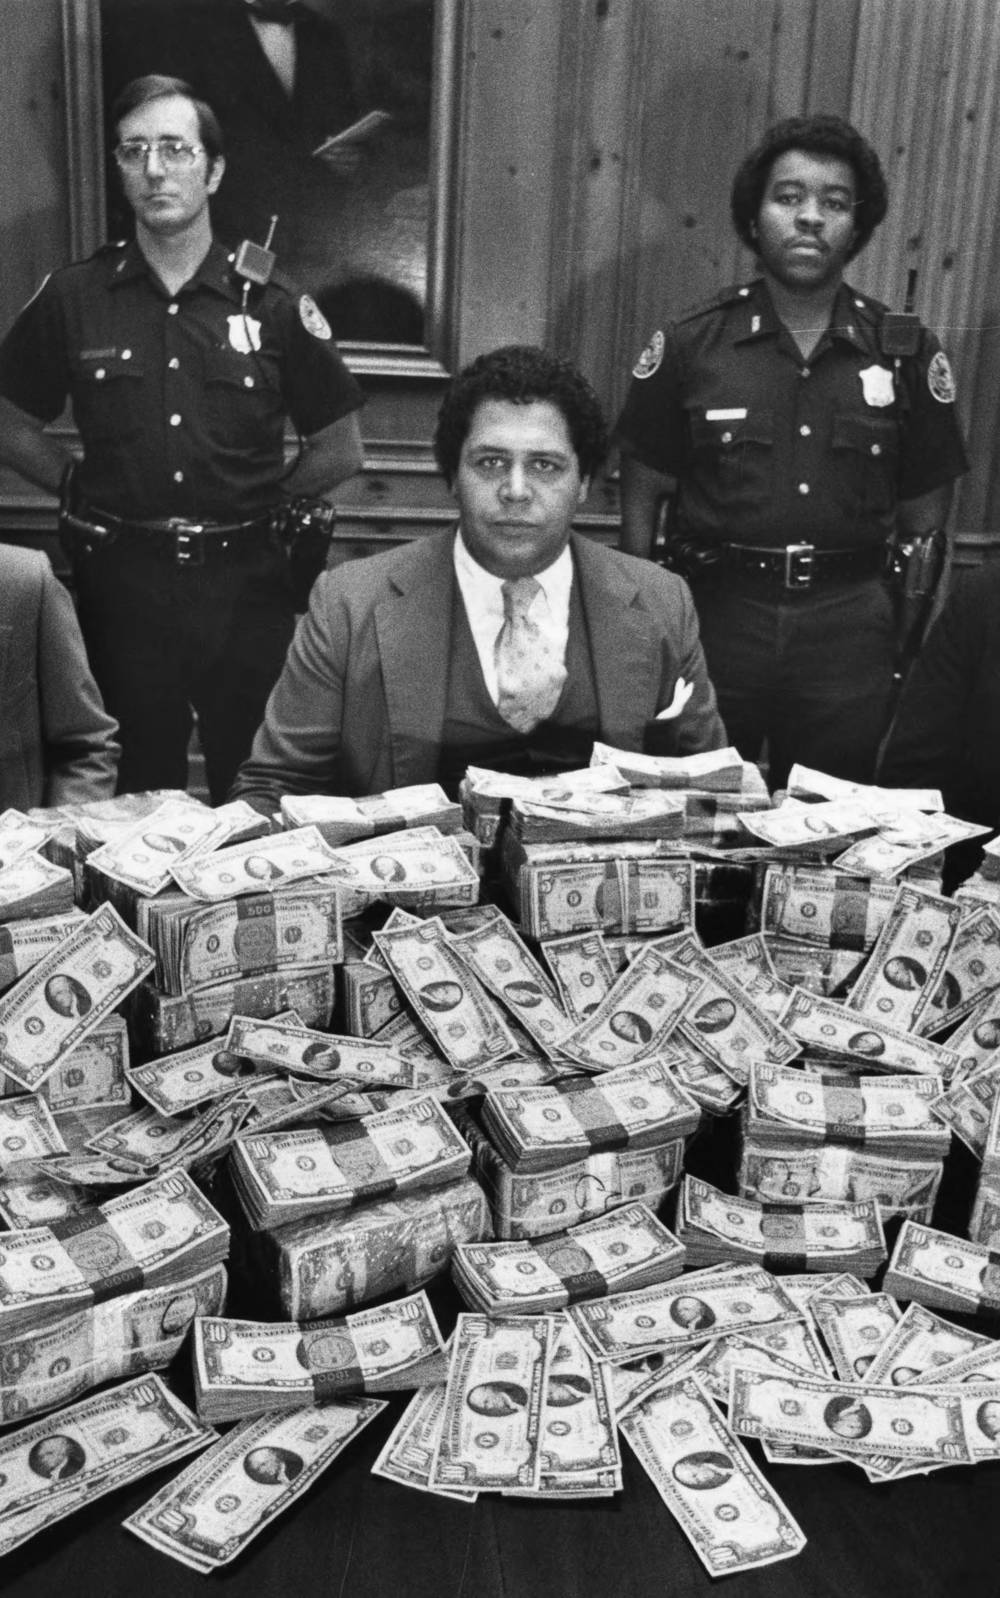 Reward money being offered for information. Photograph by George Clark (1980) Atlanta Journal-Constitution Photographic Archives. Special Collections and Archives, Georgia State University Library.